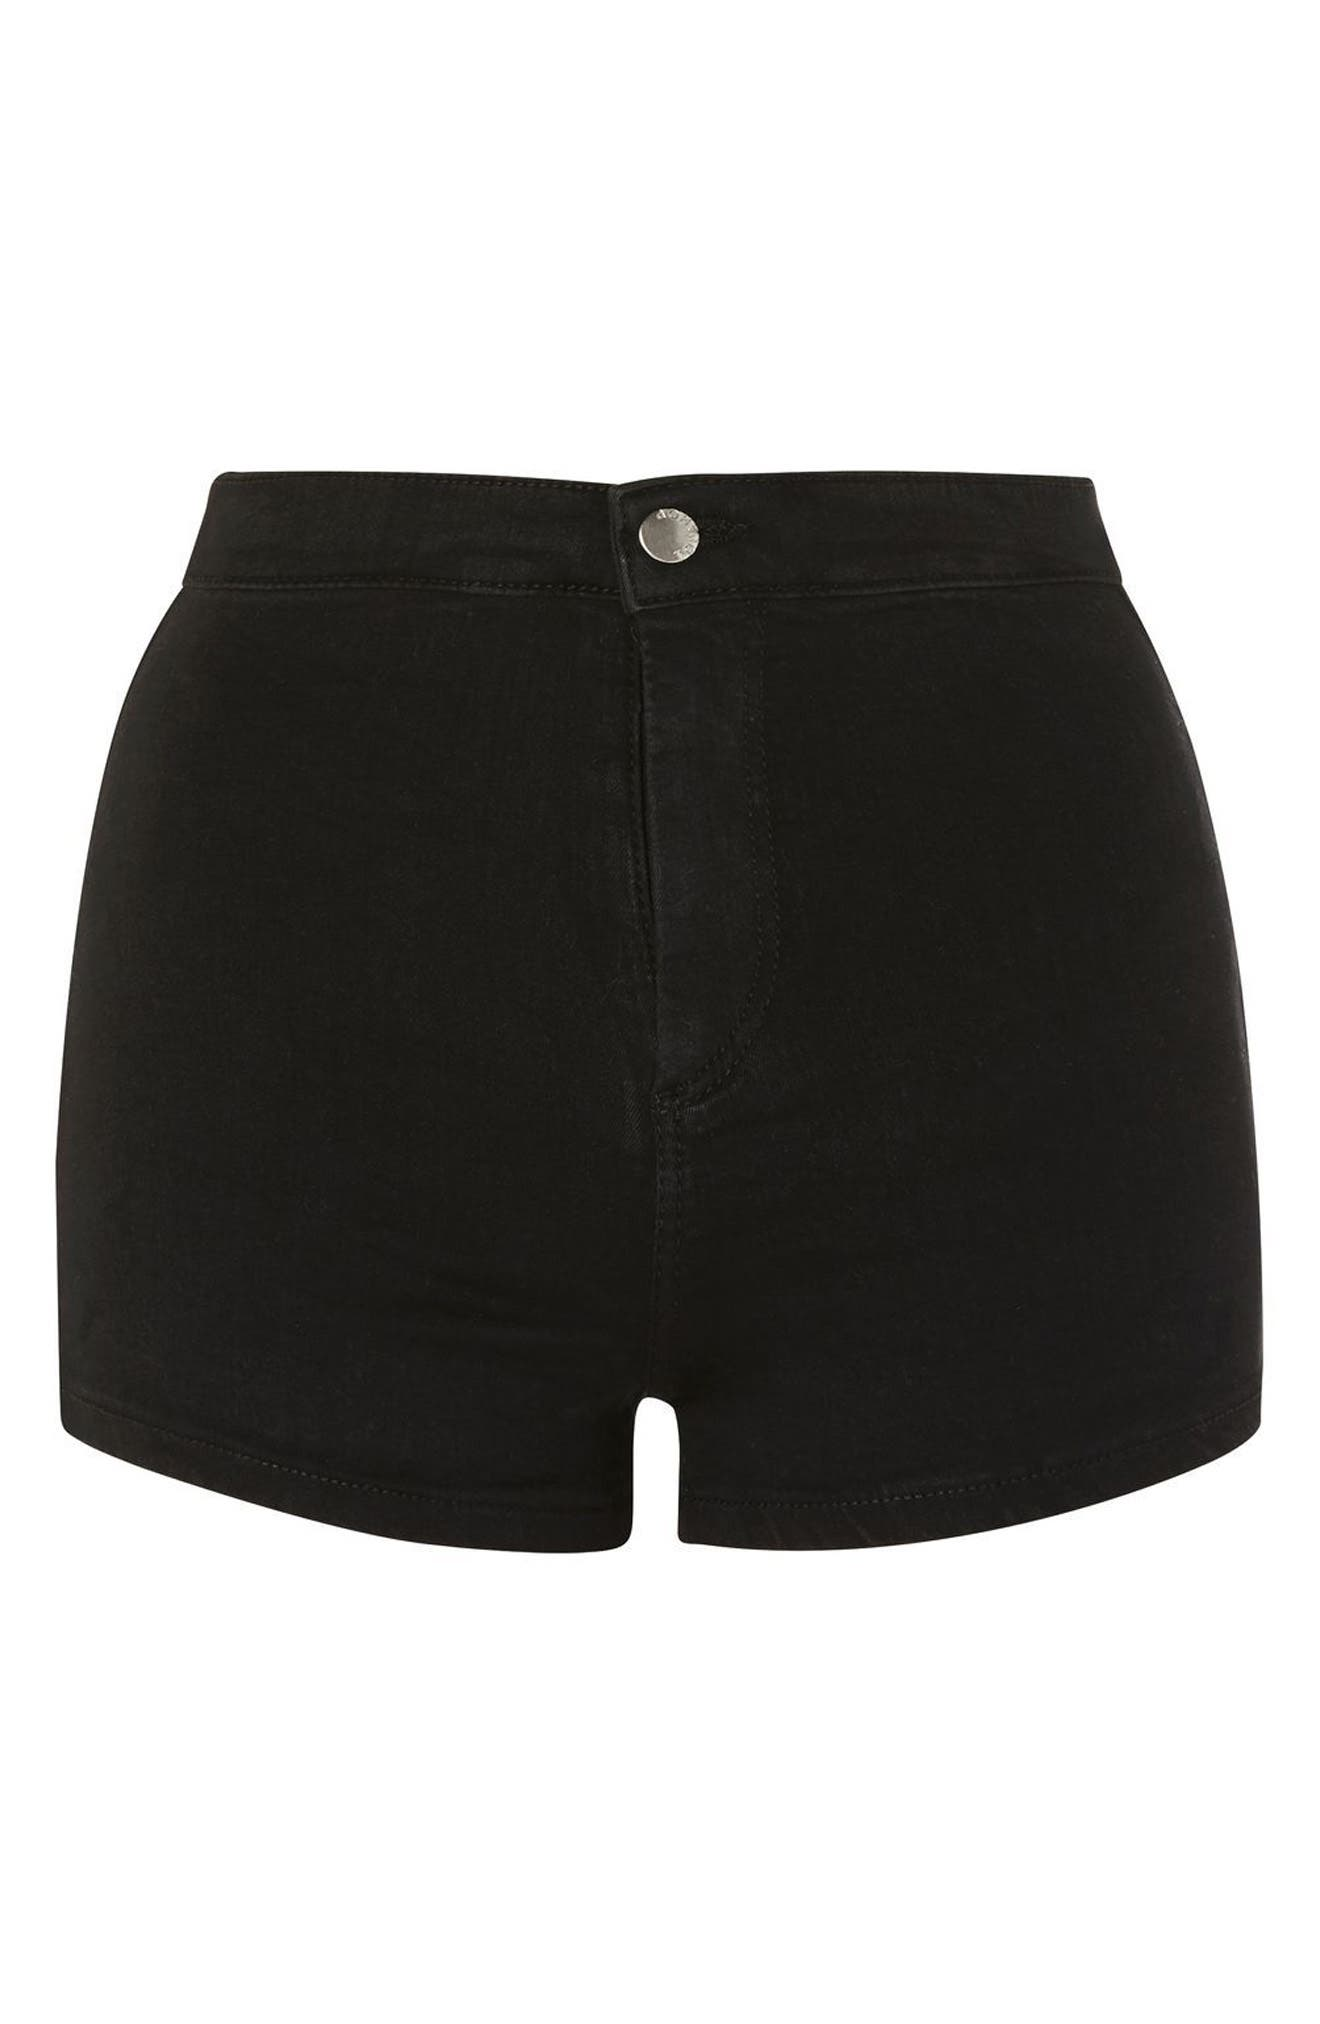 Joni Shorts,                             Alternate thumbnail 3, color,                             Washed Black